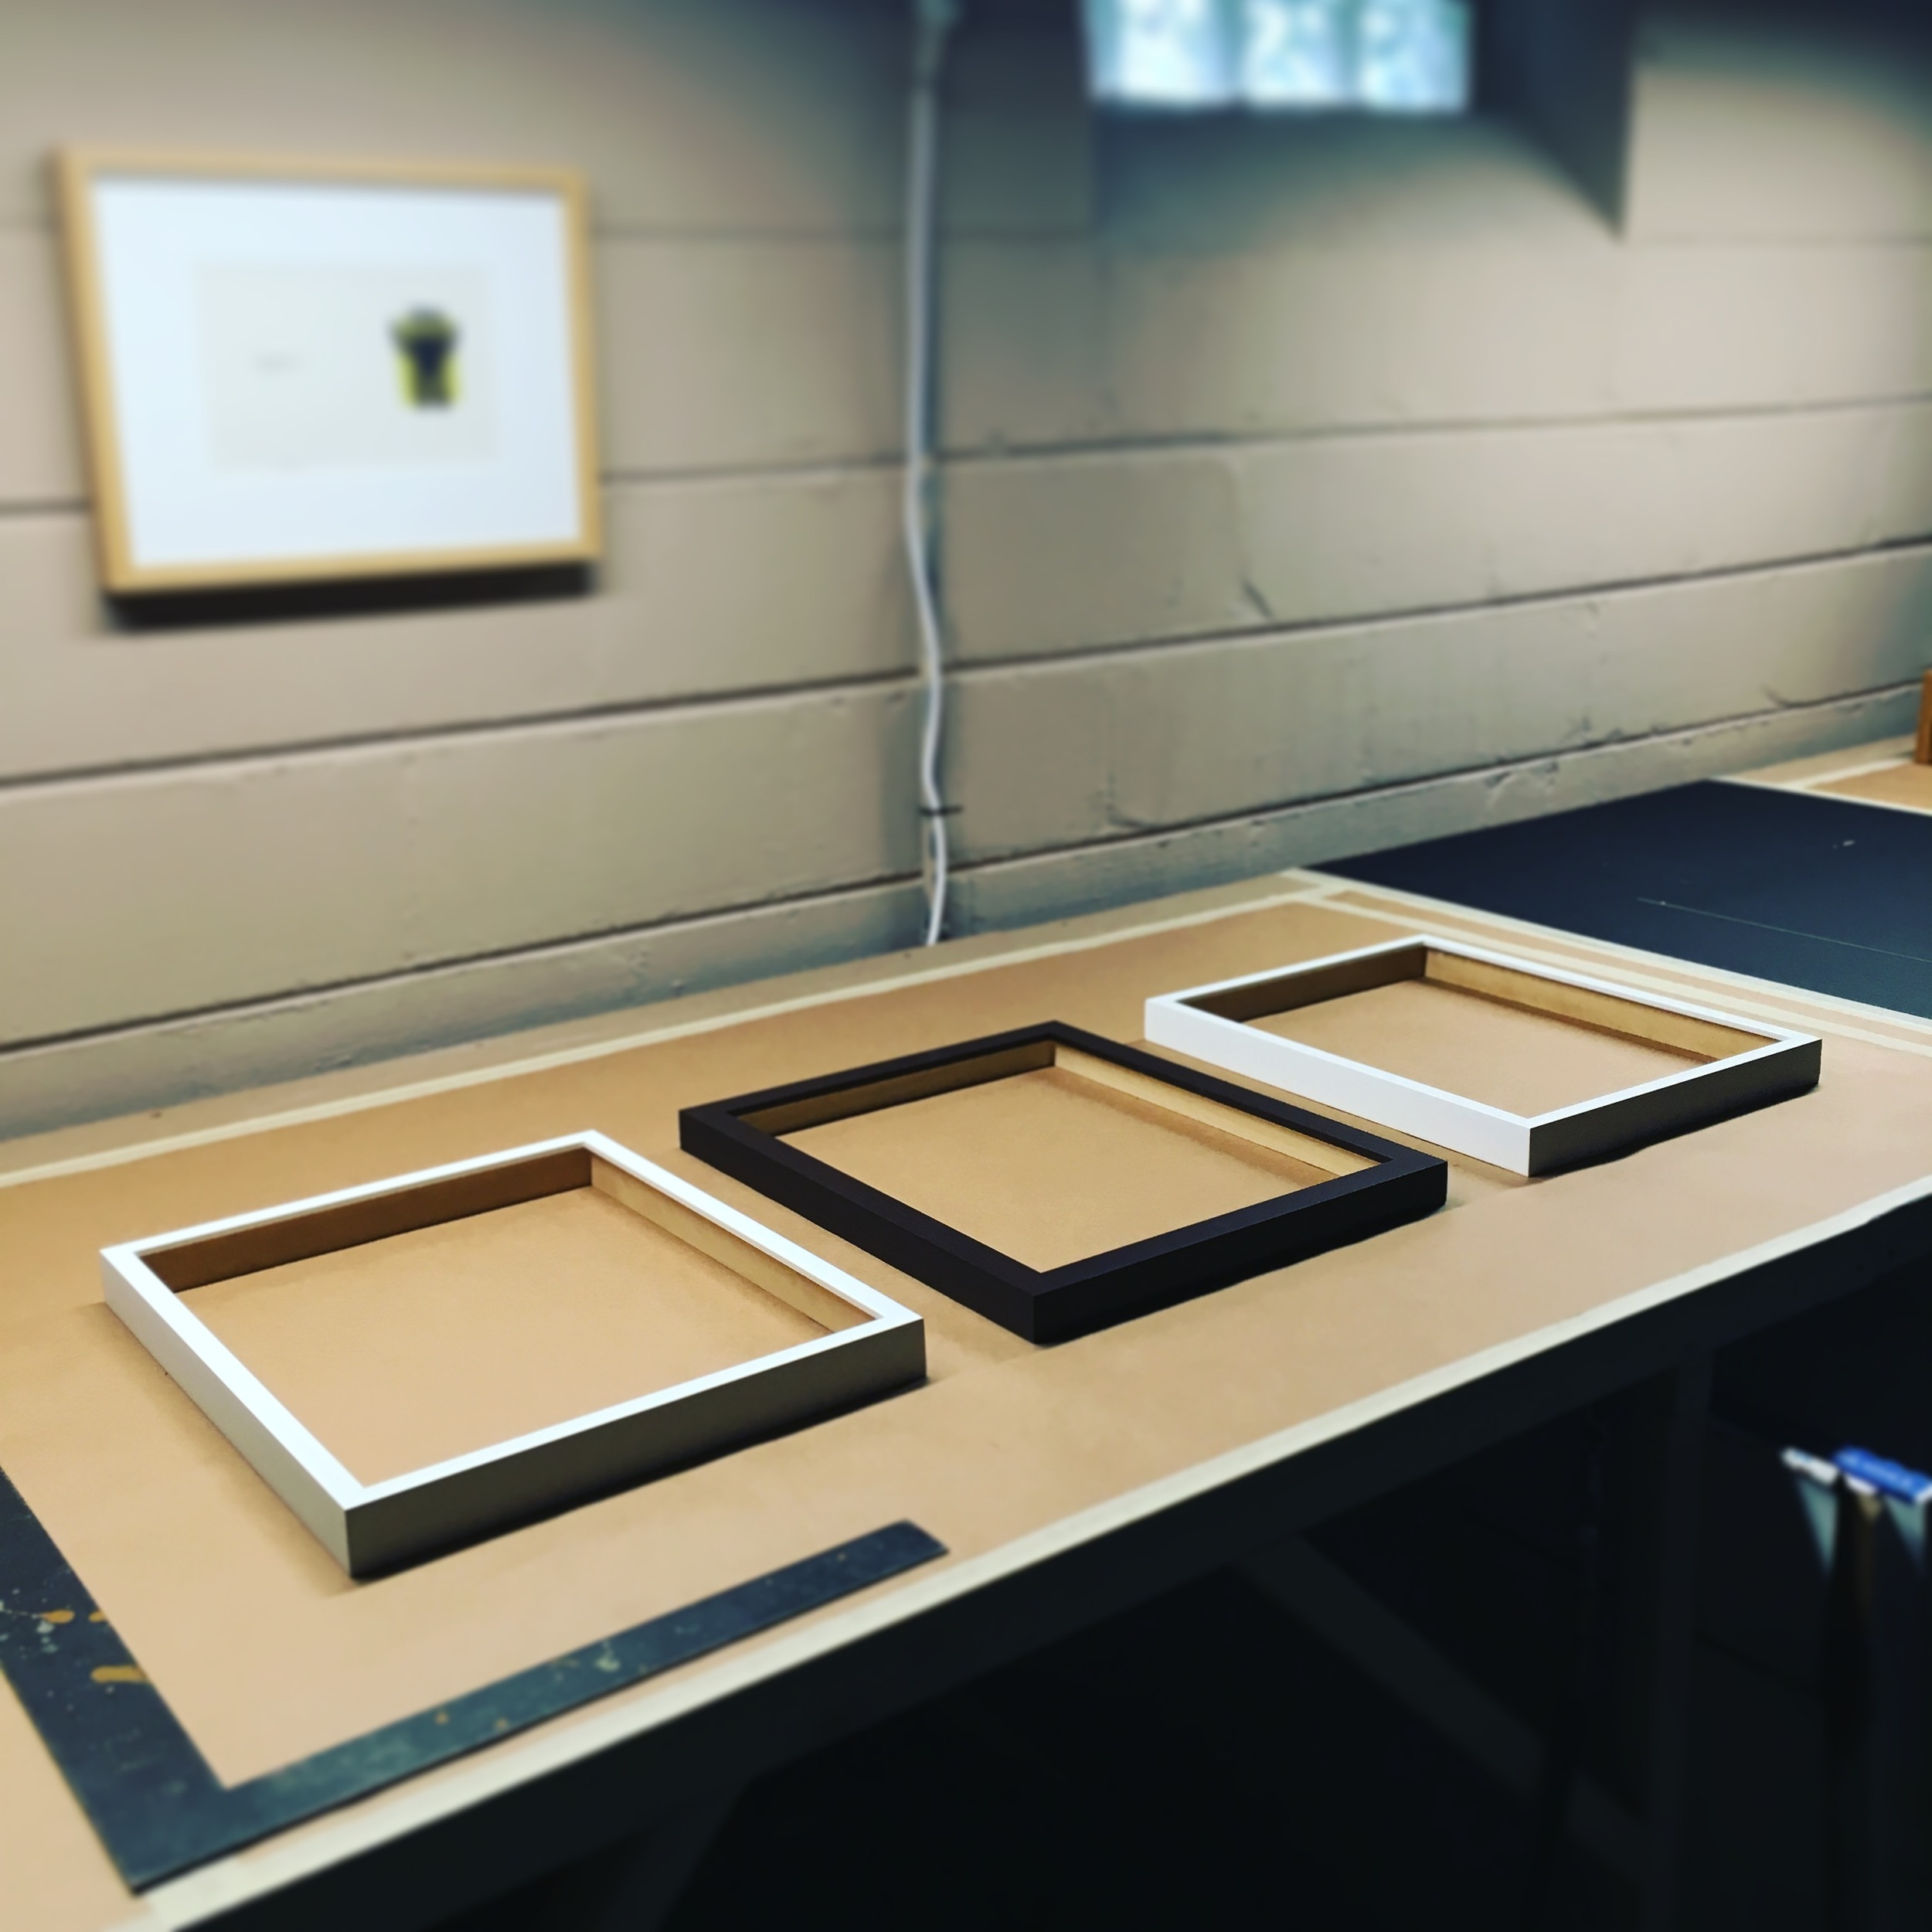 Three joined frames on the workbench